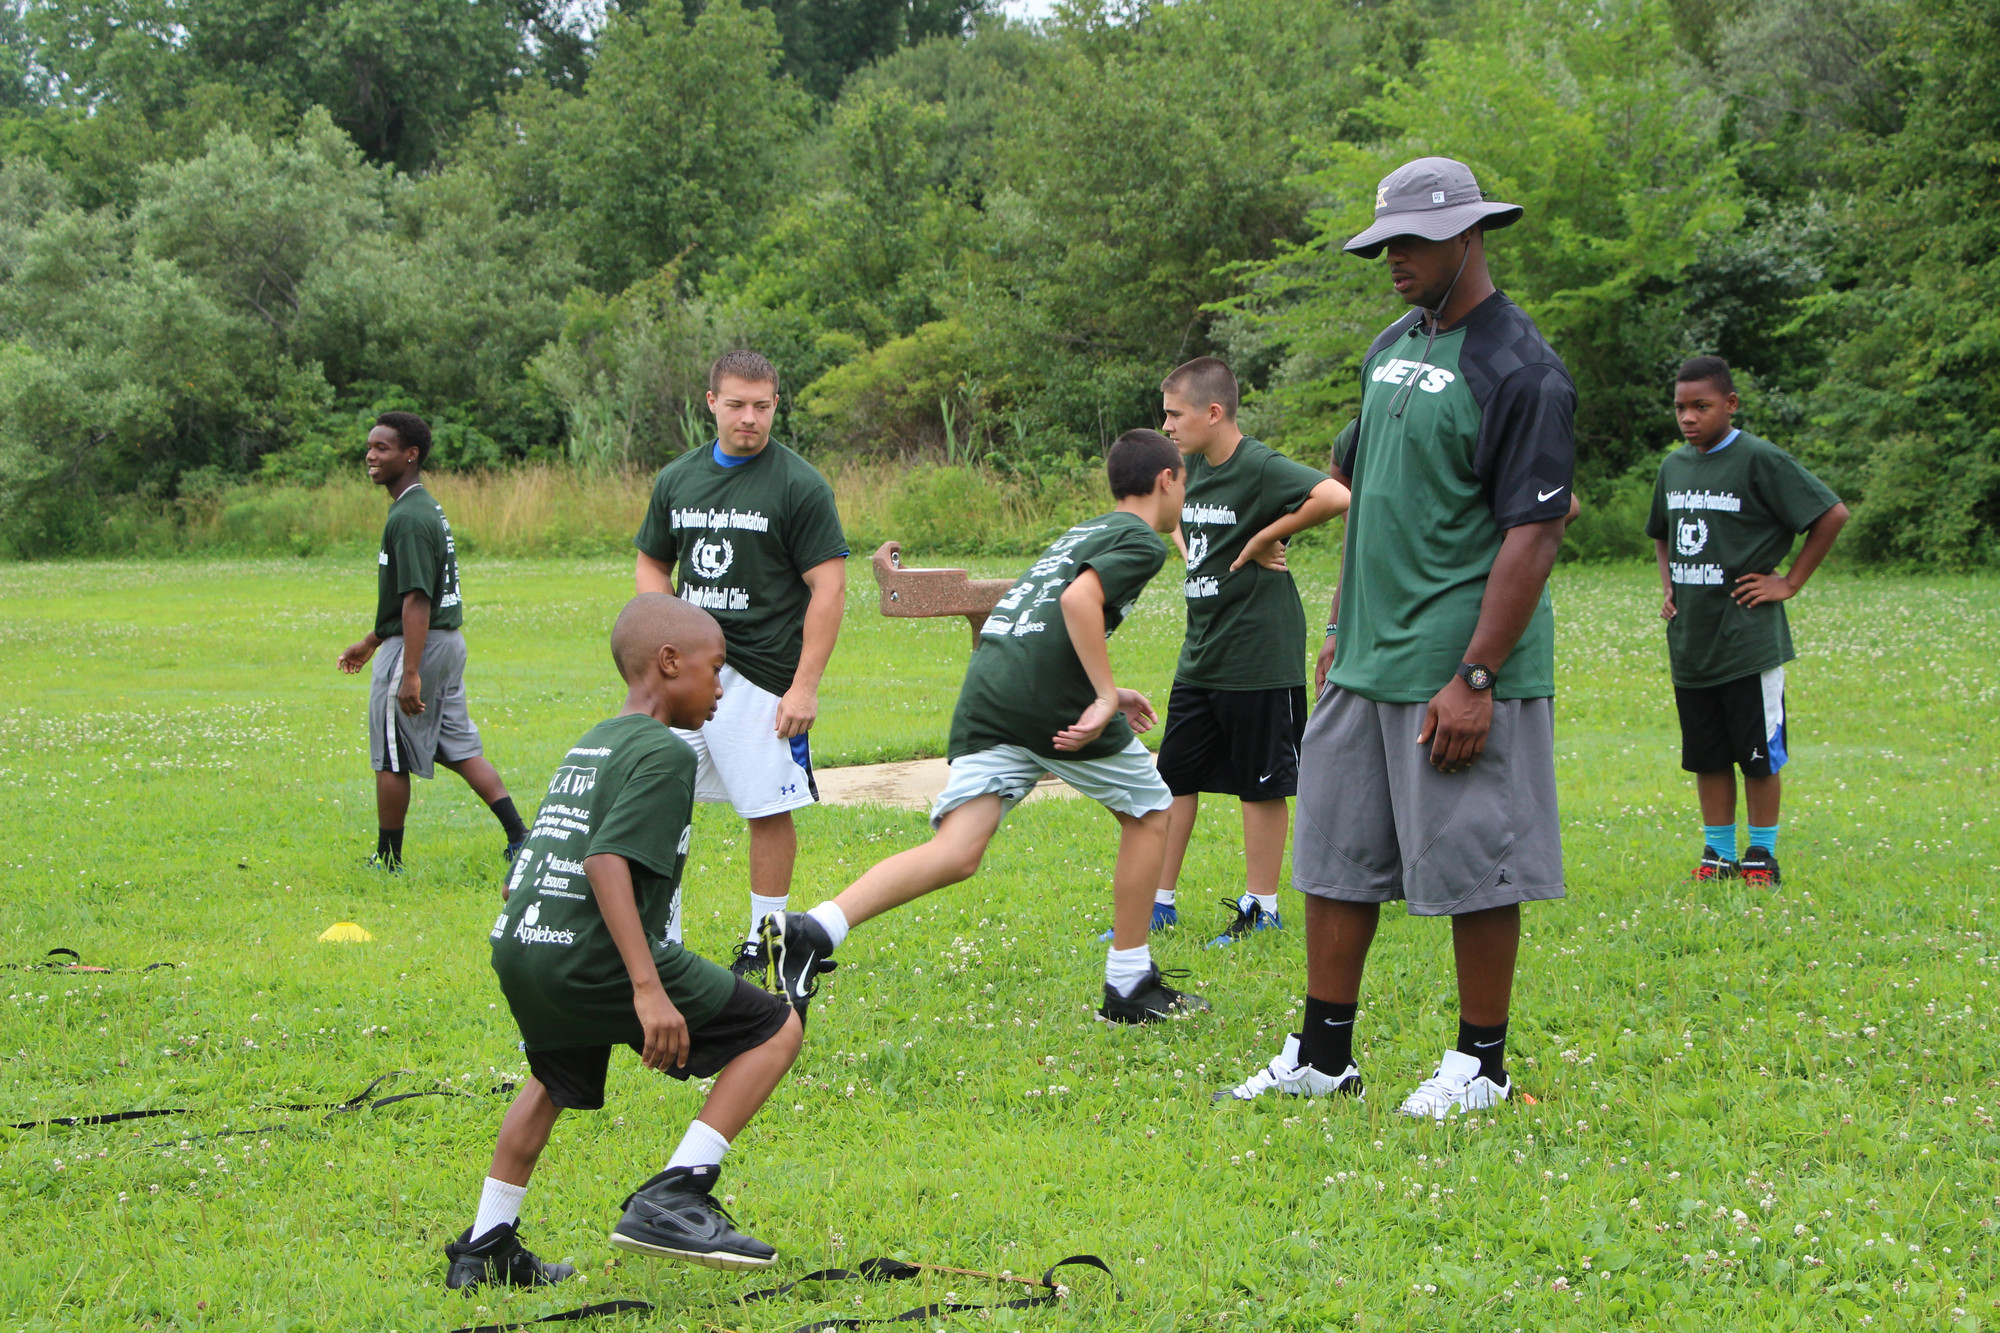 New York Jets defensive end Quinton Coples instructed local youth football players at a clinic on July 15 at Baldwin Park that benefited his foundation, which helps children in need.